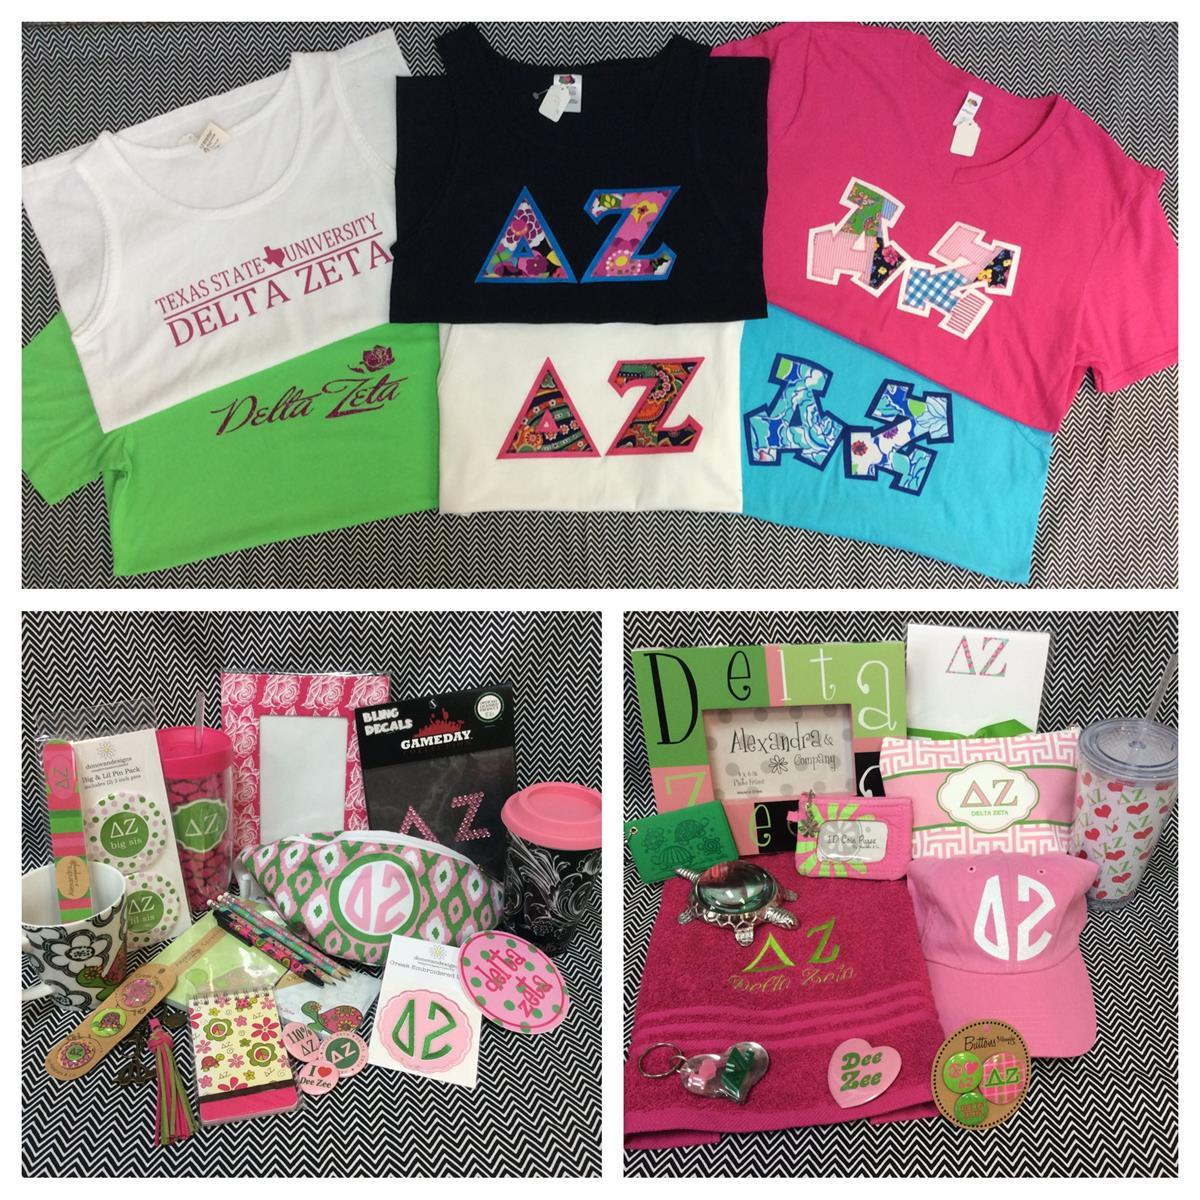 Delta Zeta Custom Embroidery T-shirts Accessories Campus Gear Stickers